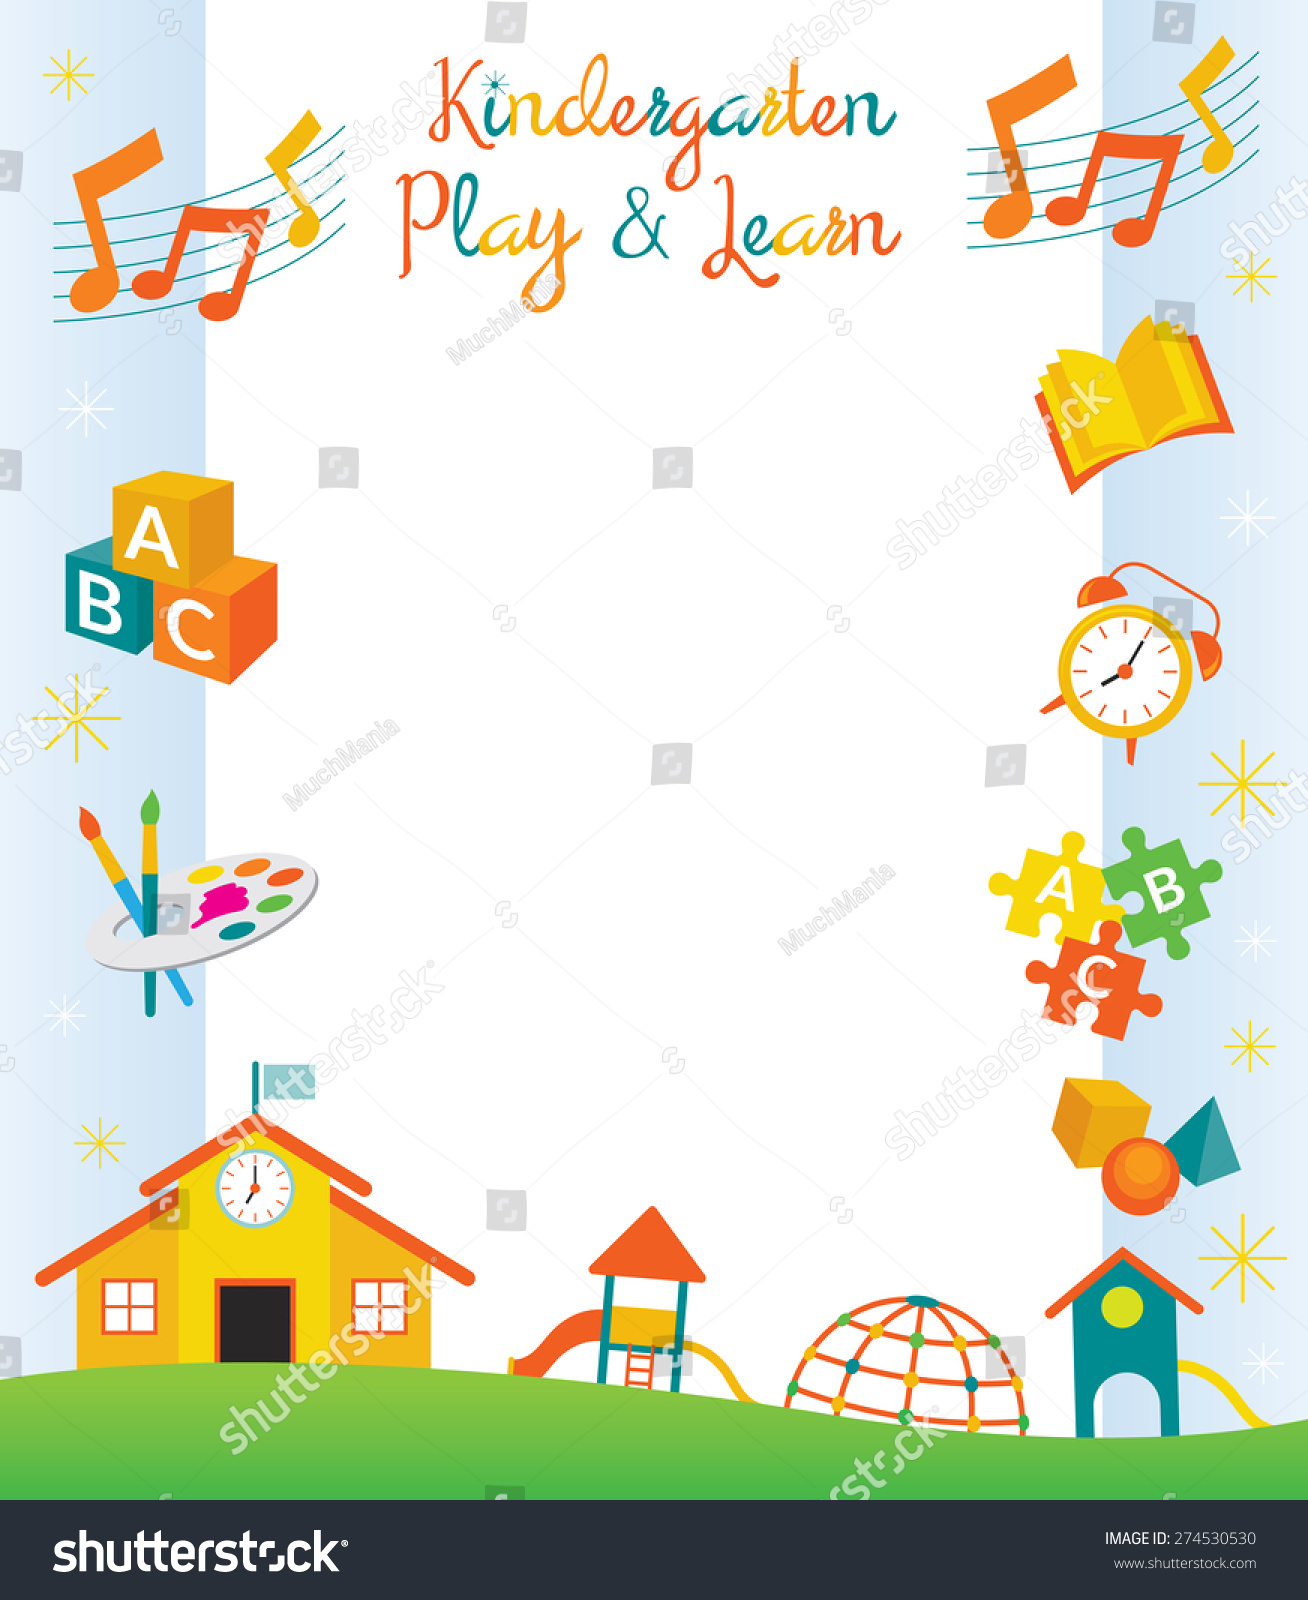 Kindergarten Preschool Kids Objects Border And Frame